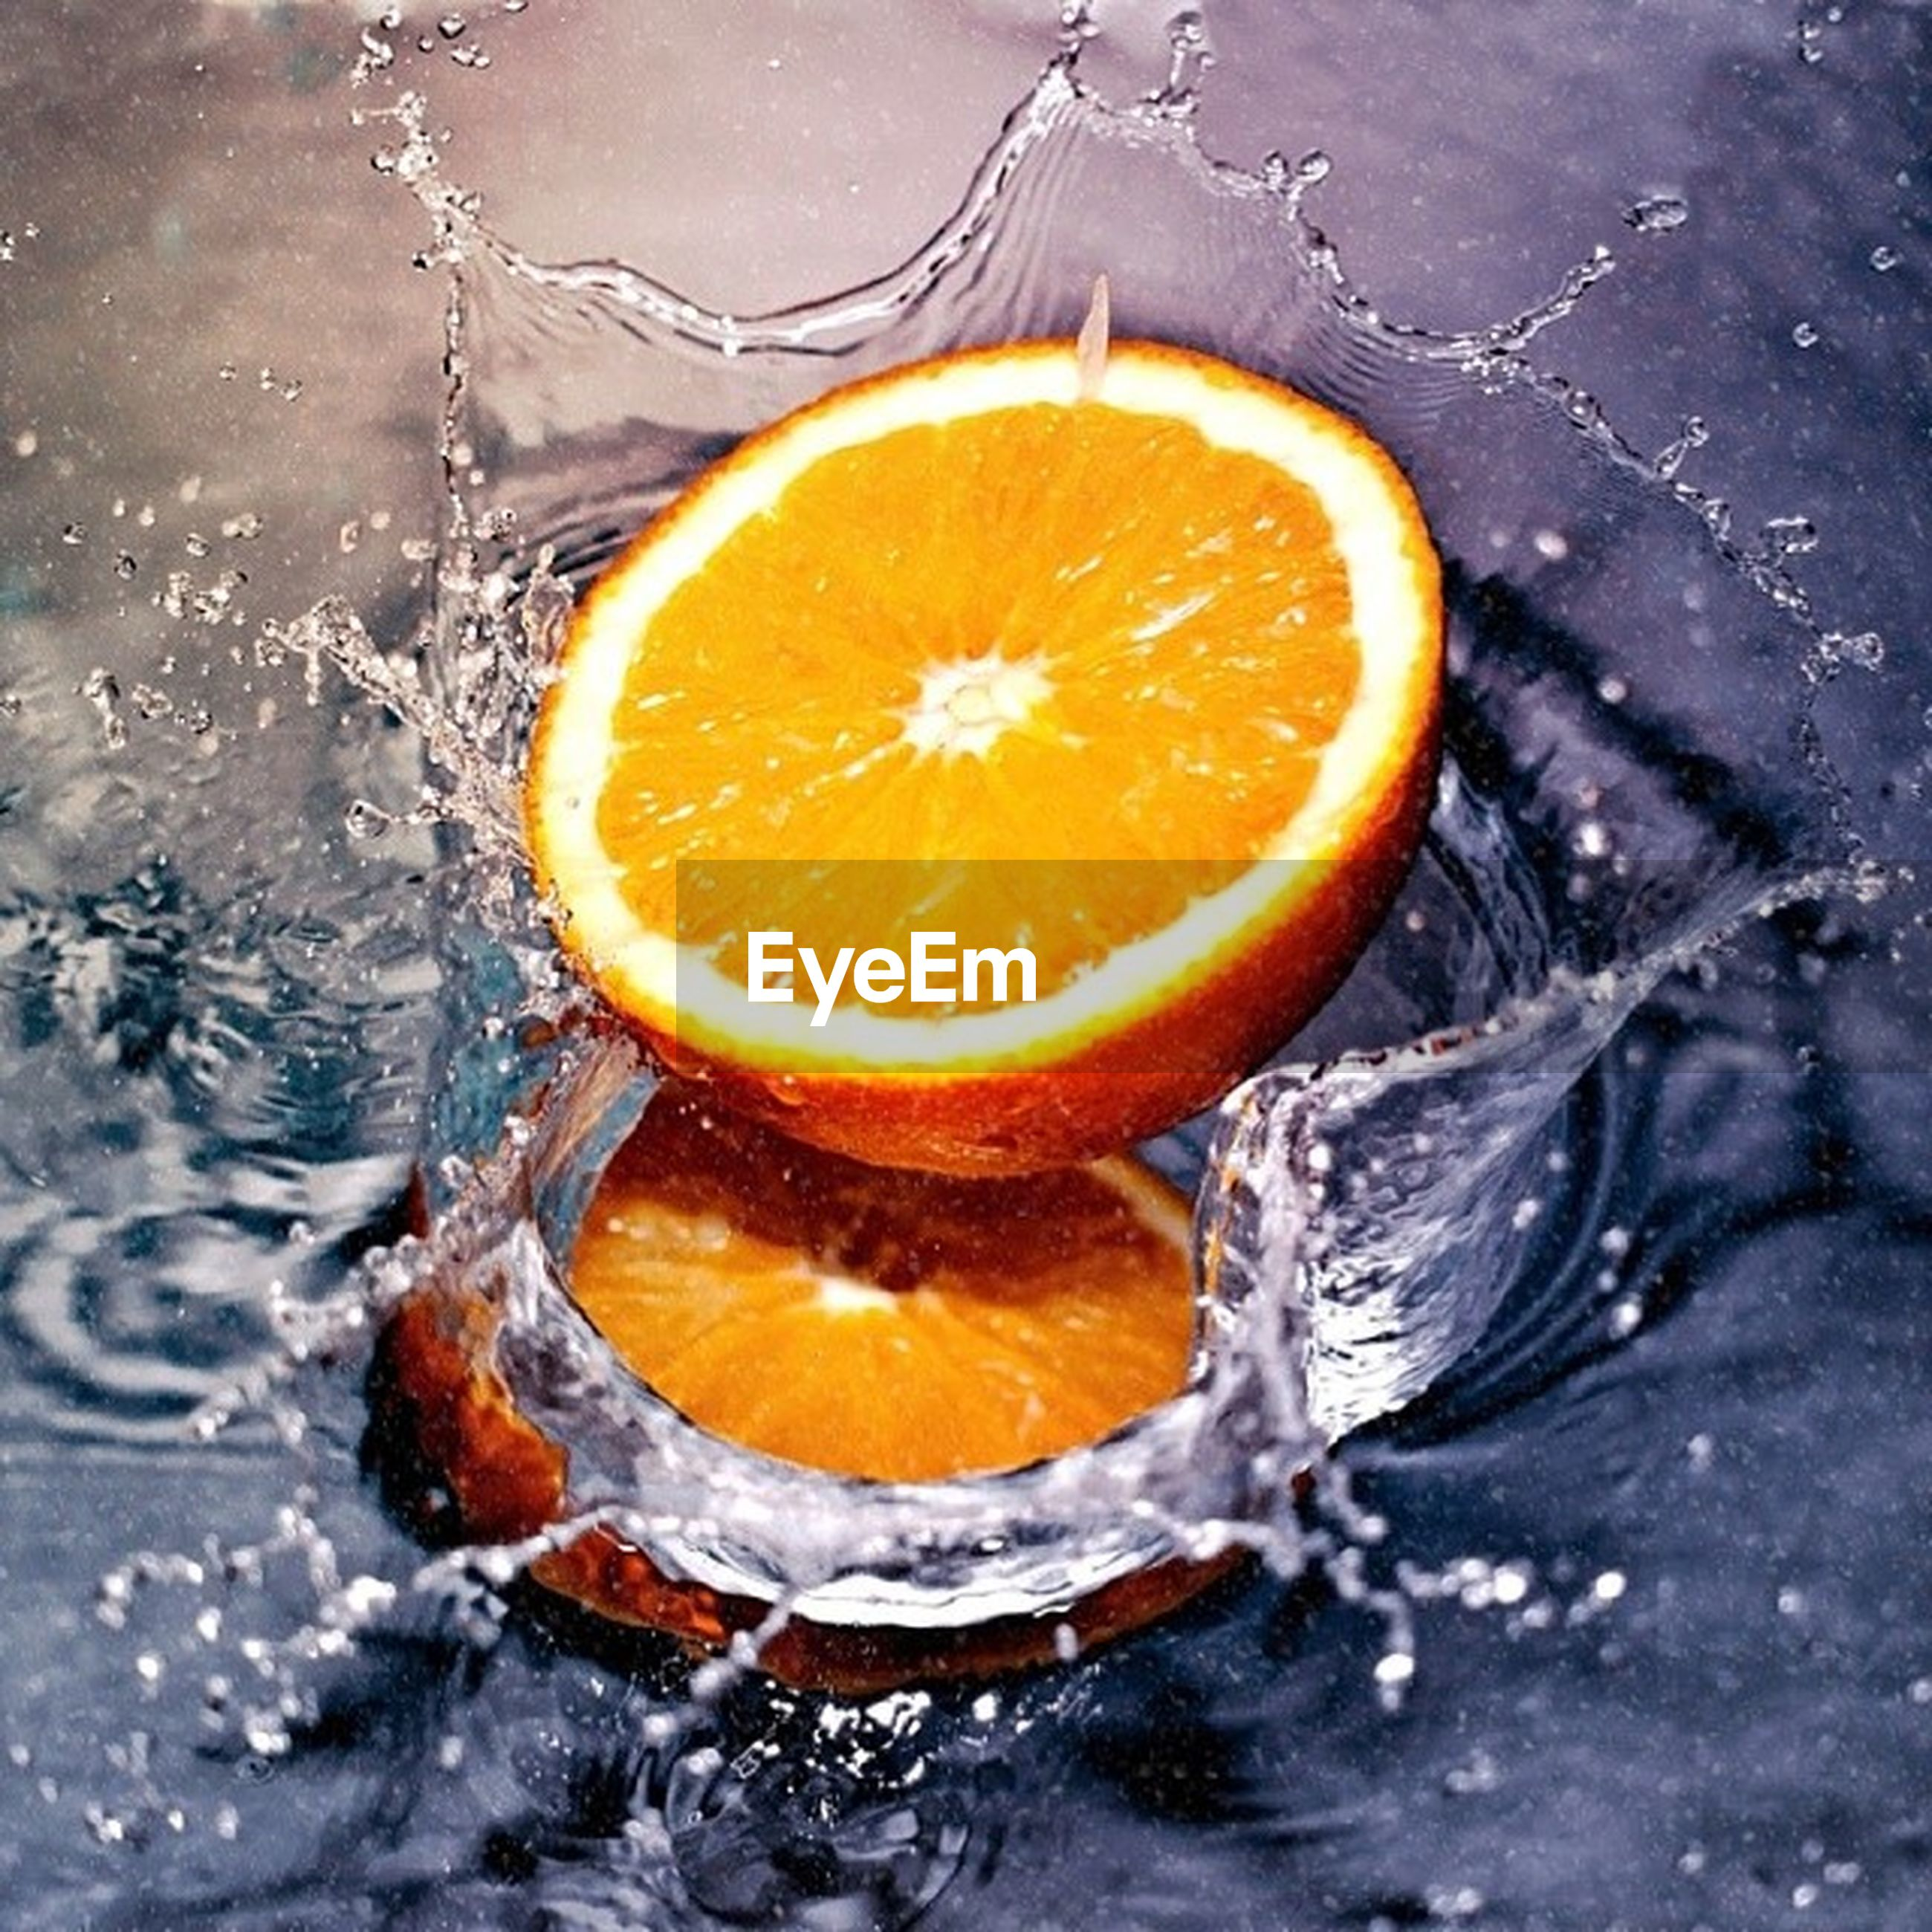 food and drink, freshness, food, healthy eating, close-up, orange color, yellow, citrus fruit, slice, still life, water, high angle view, fruit, indoors, lemon, no people, orange - fruit, refreshment, table, directly above